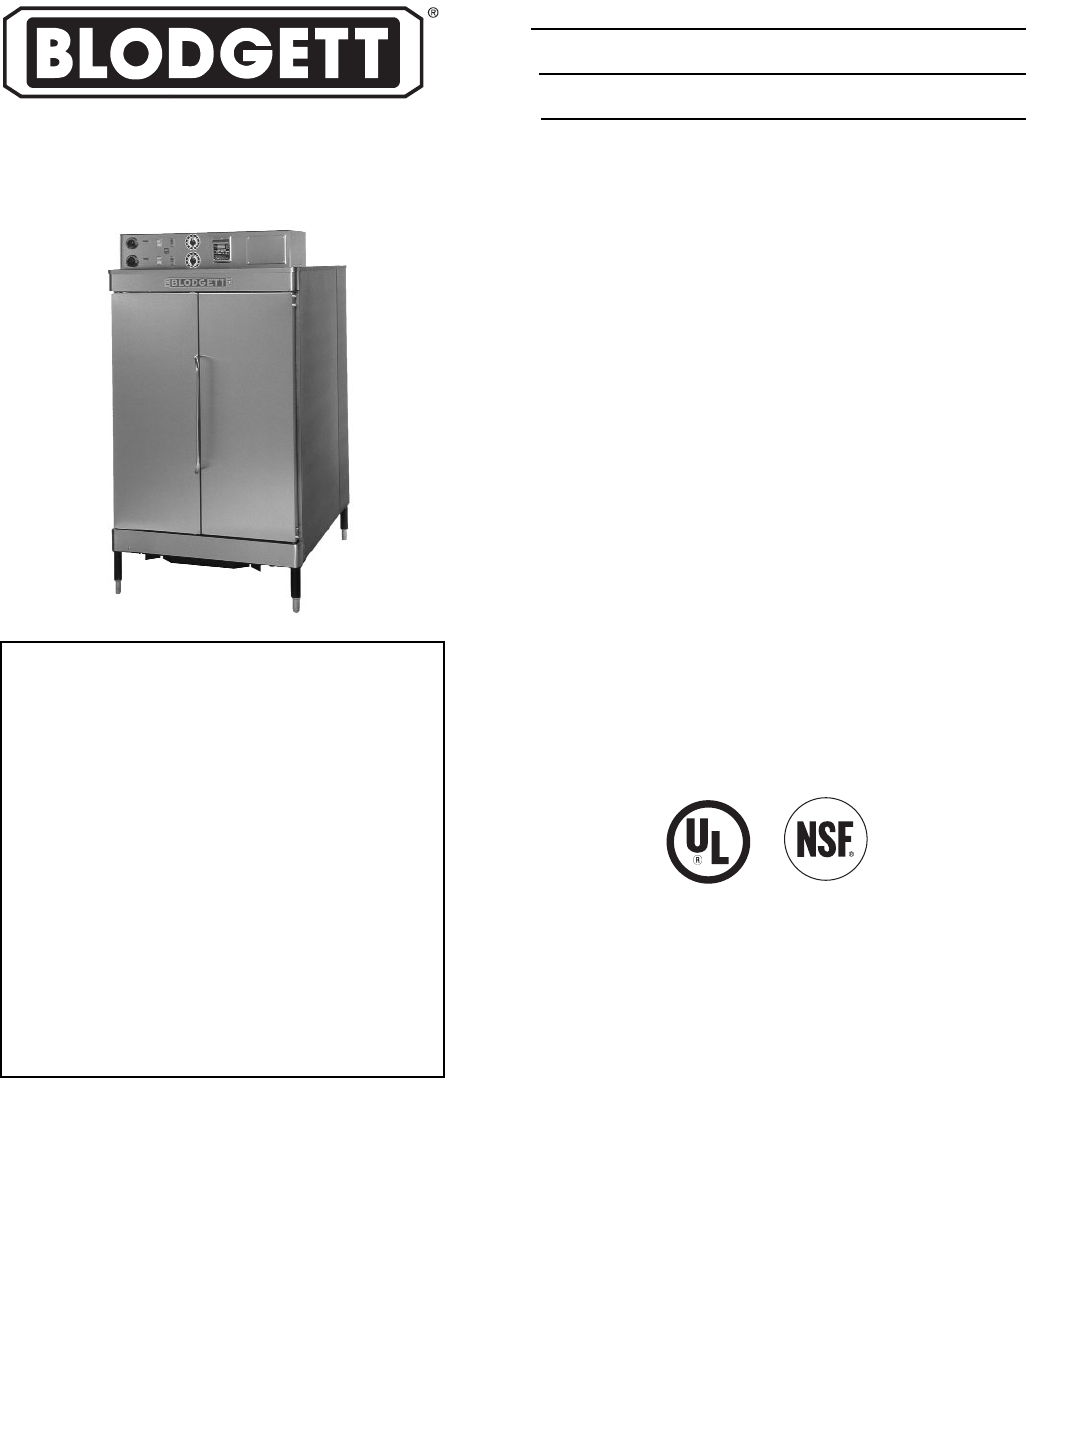 Blodgett Oven Re 42 User Guide Manualsonlinecom Wiring Diagram Company